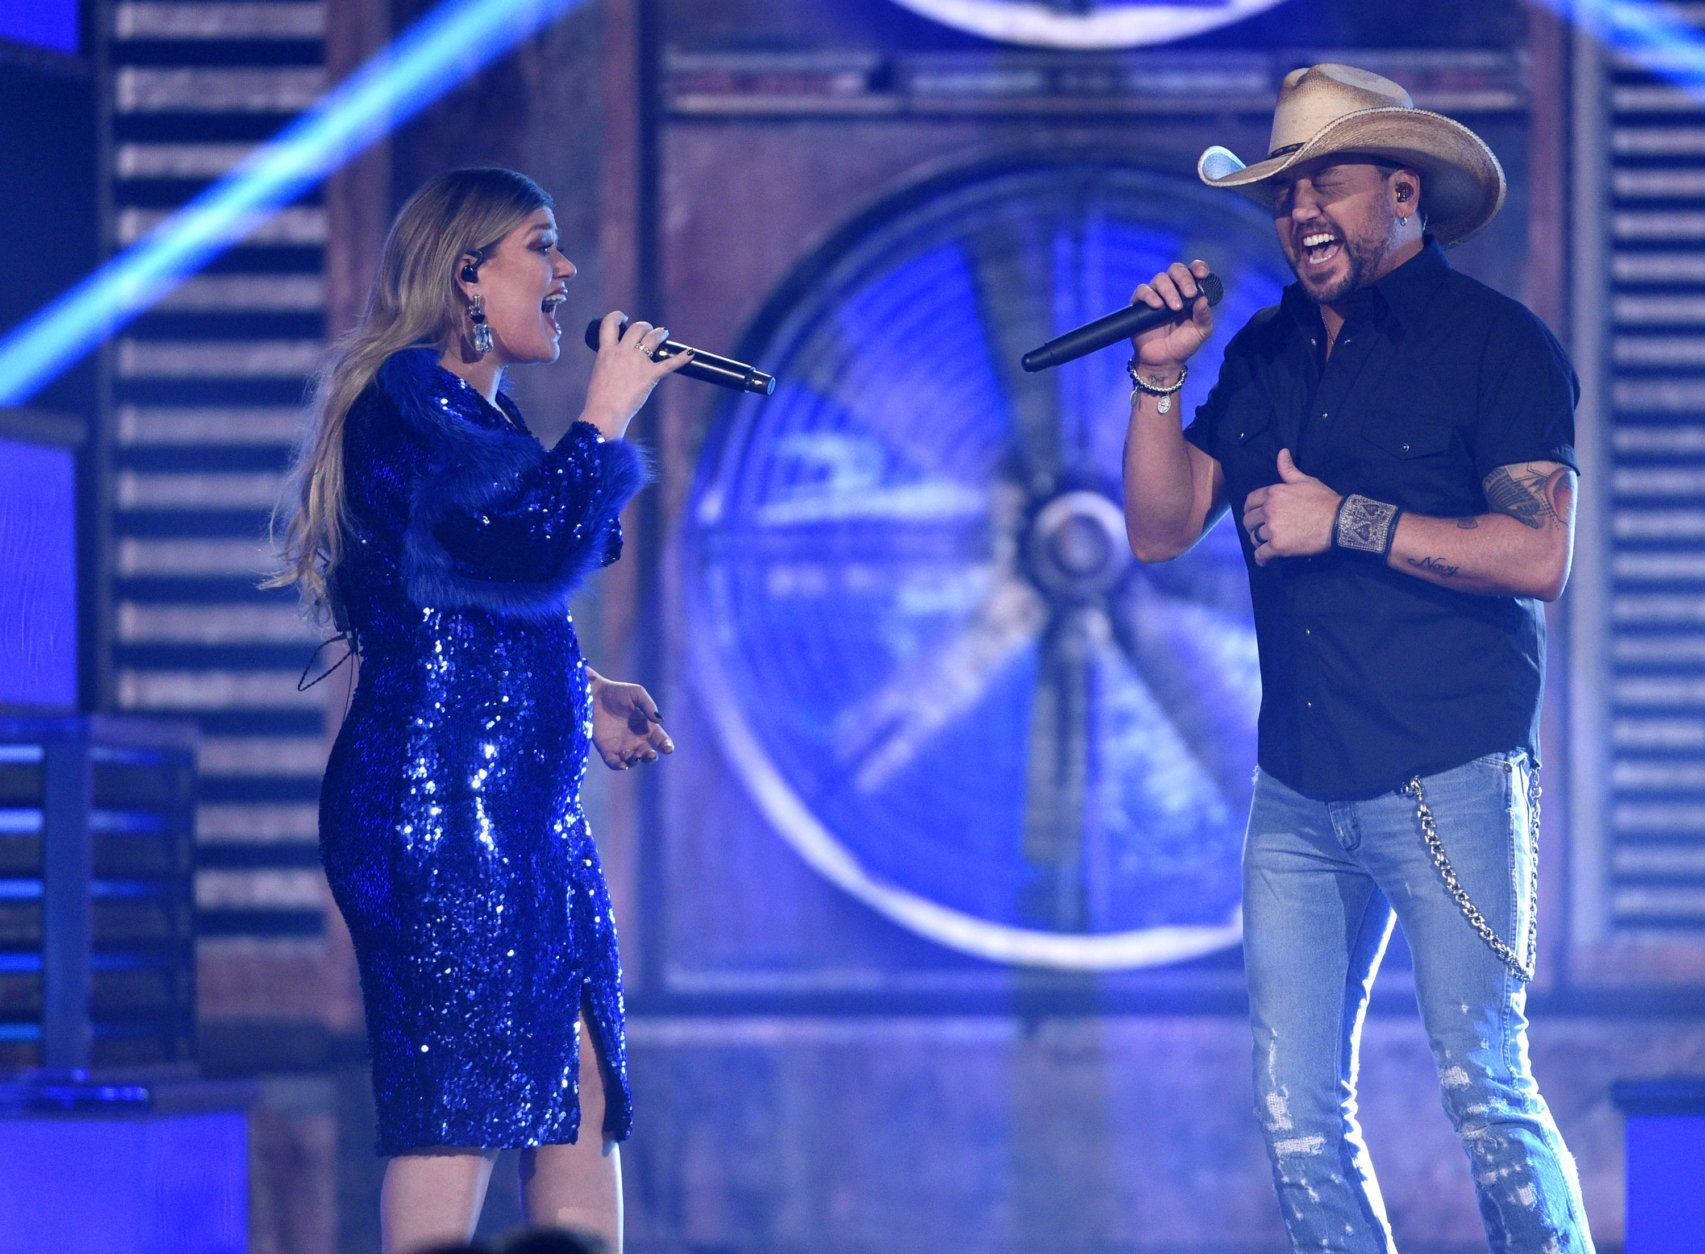 Kelly Clarkson, left, and Jason Aldean, winner of the Dick Clark artist of the decade award, perform a medley at the 54th annual Academy of Country Music Awards at the MGM Grand Garden Arena on Sunday, April 7, 2019, in Las Vegas. (Photo by Chris Pizzello/Invision/AP)